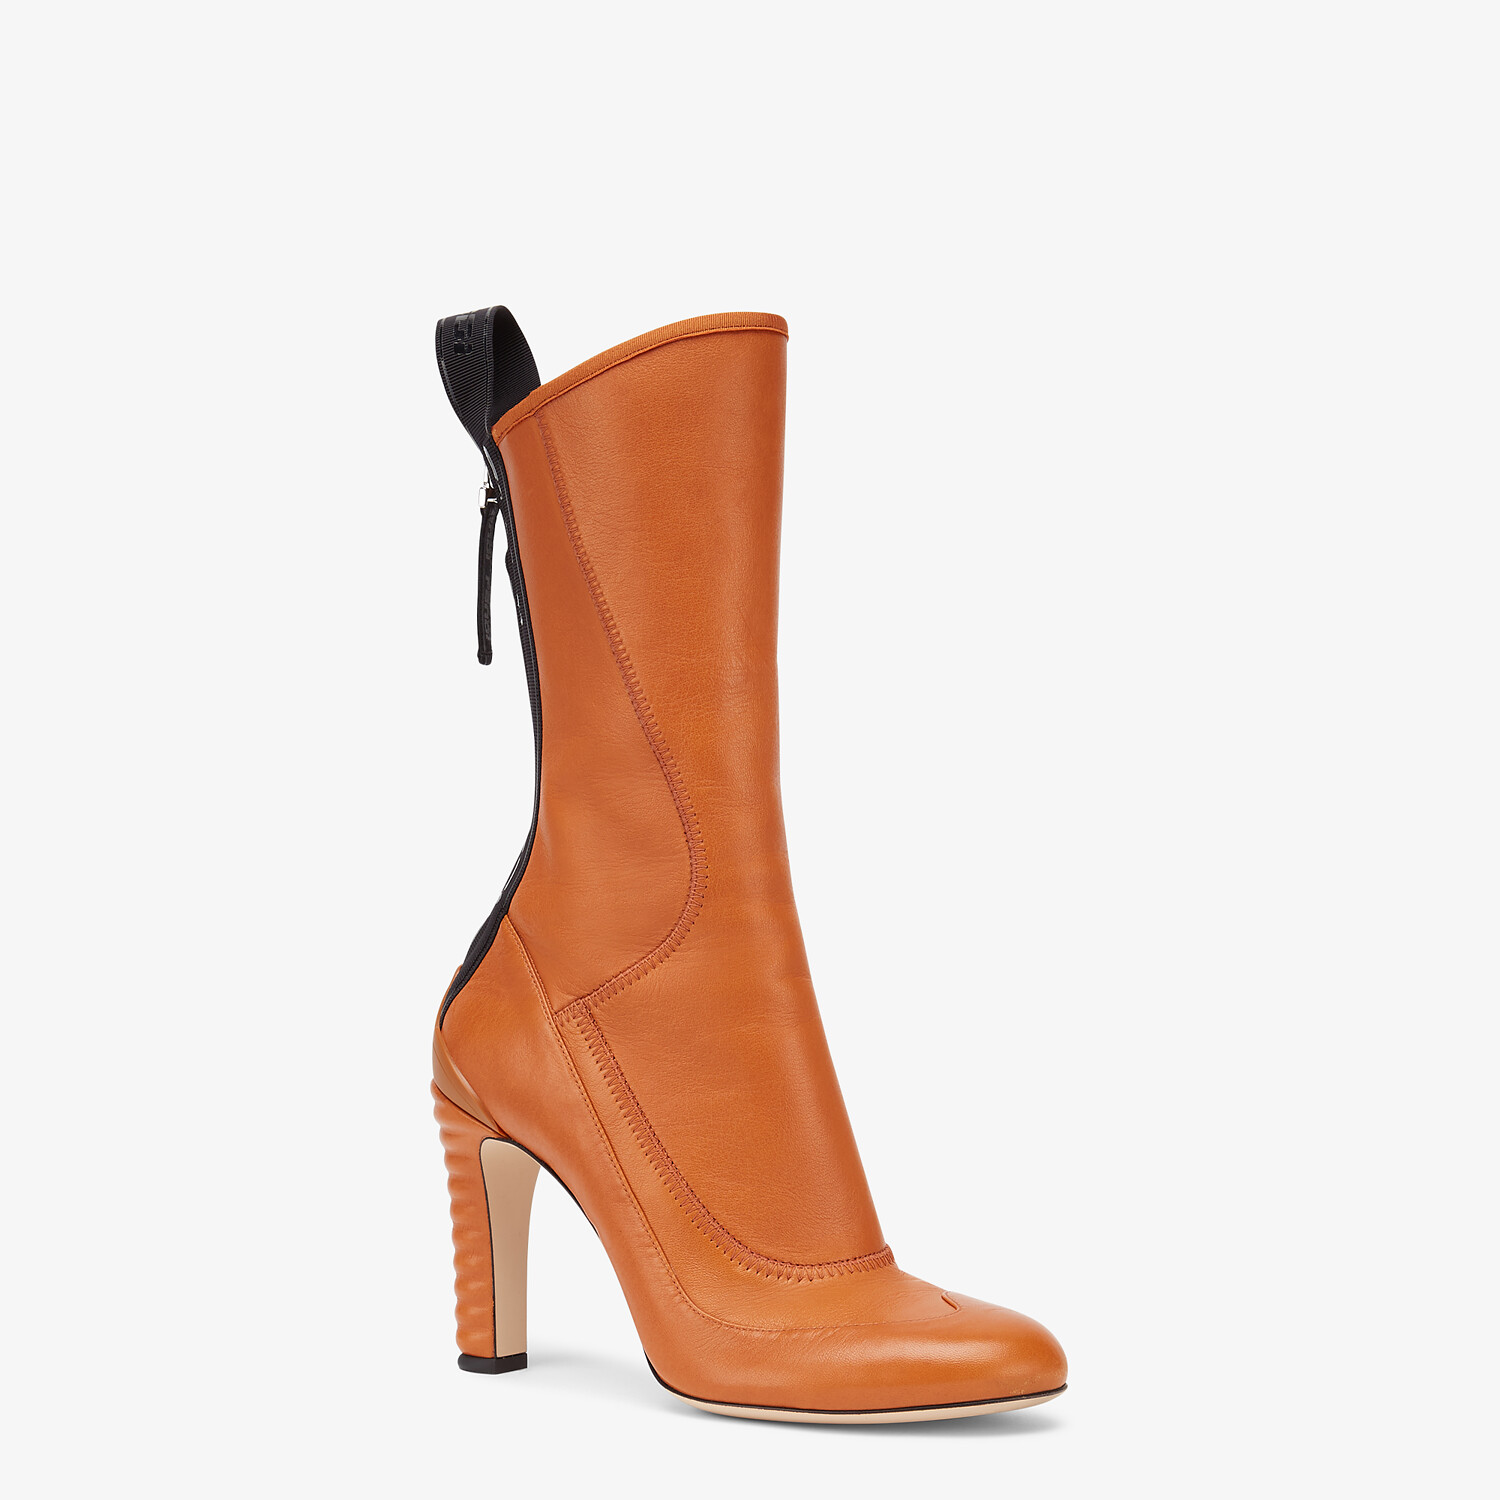 FENDI ANKLE BOOTS - Brown leather ankle boots - view 2 detail